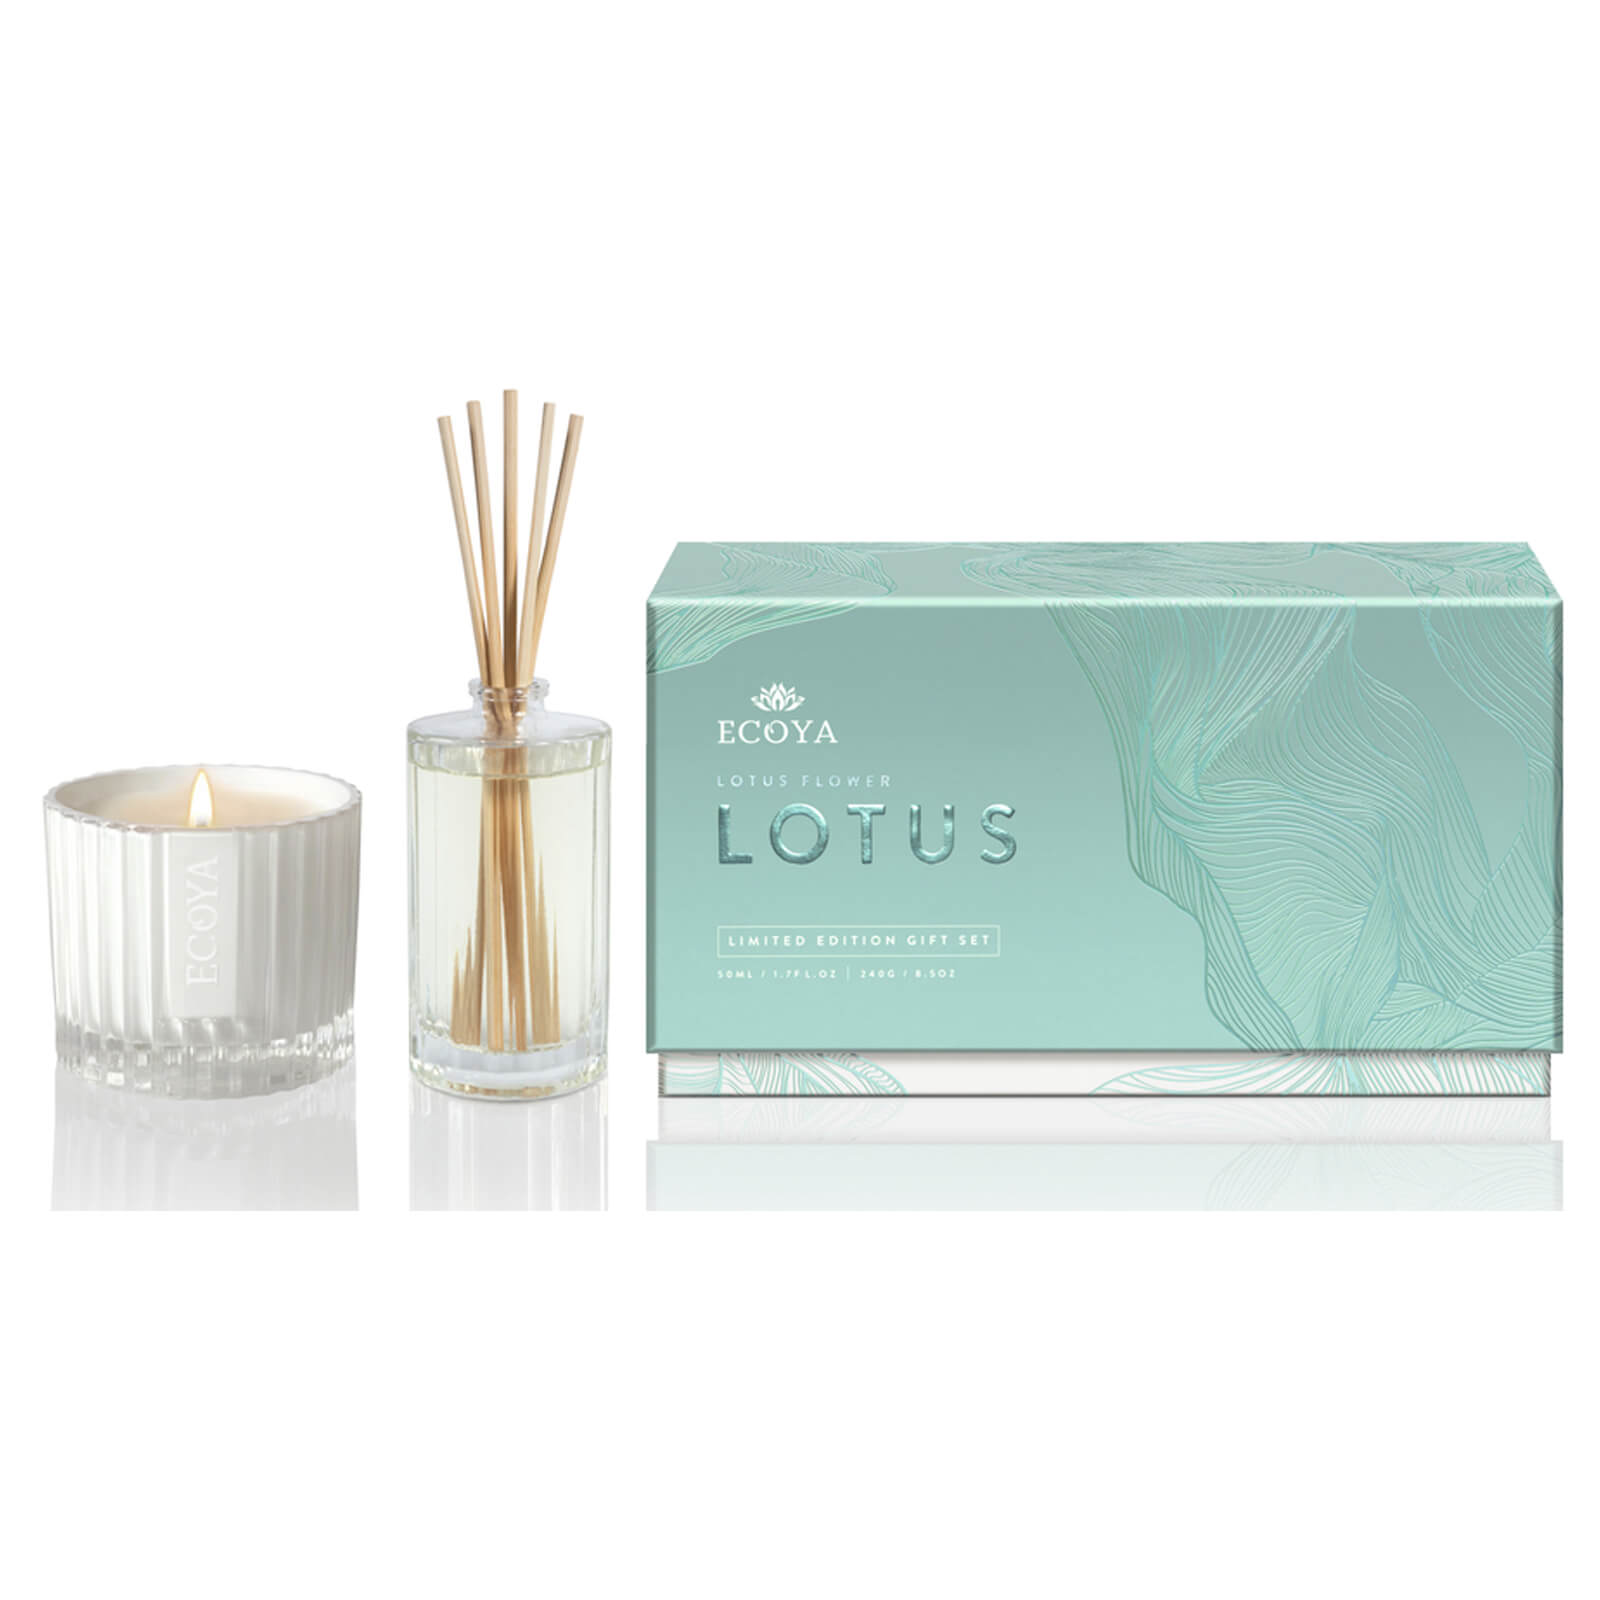 Ecoya Lotus Flower Sorbet Candle And Diffuser Gift Set Limited